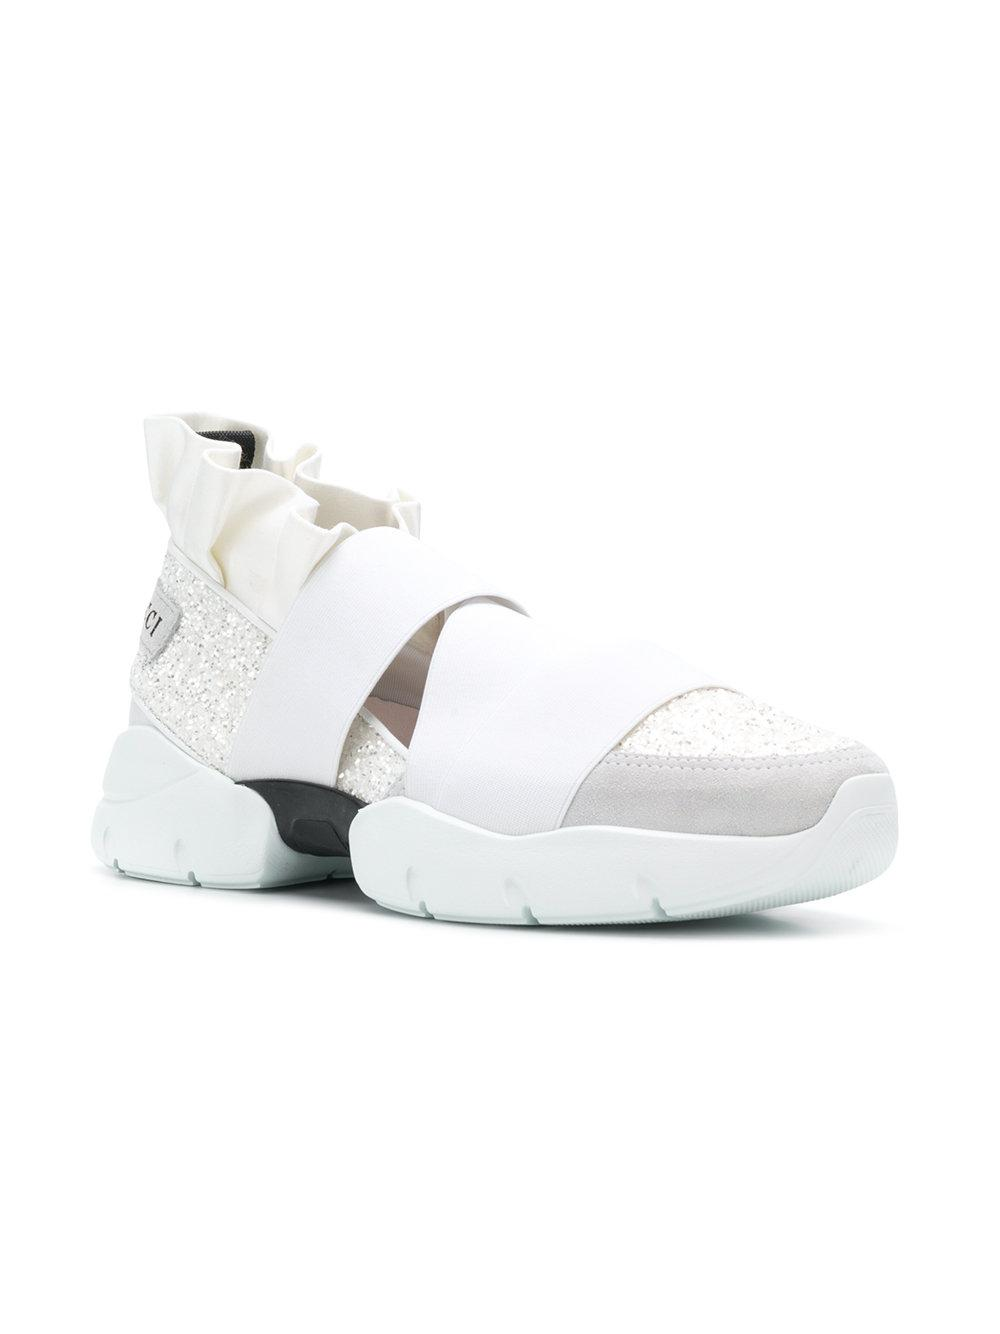 new styles d51e0 9dcfa emilio-pucci-White-City-Up-Slip-on-Sneakers.jpeg